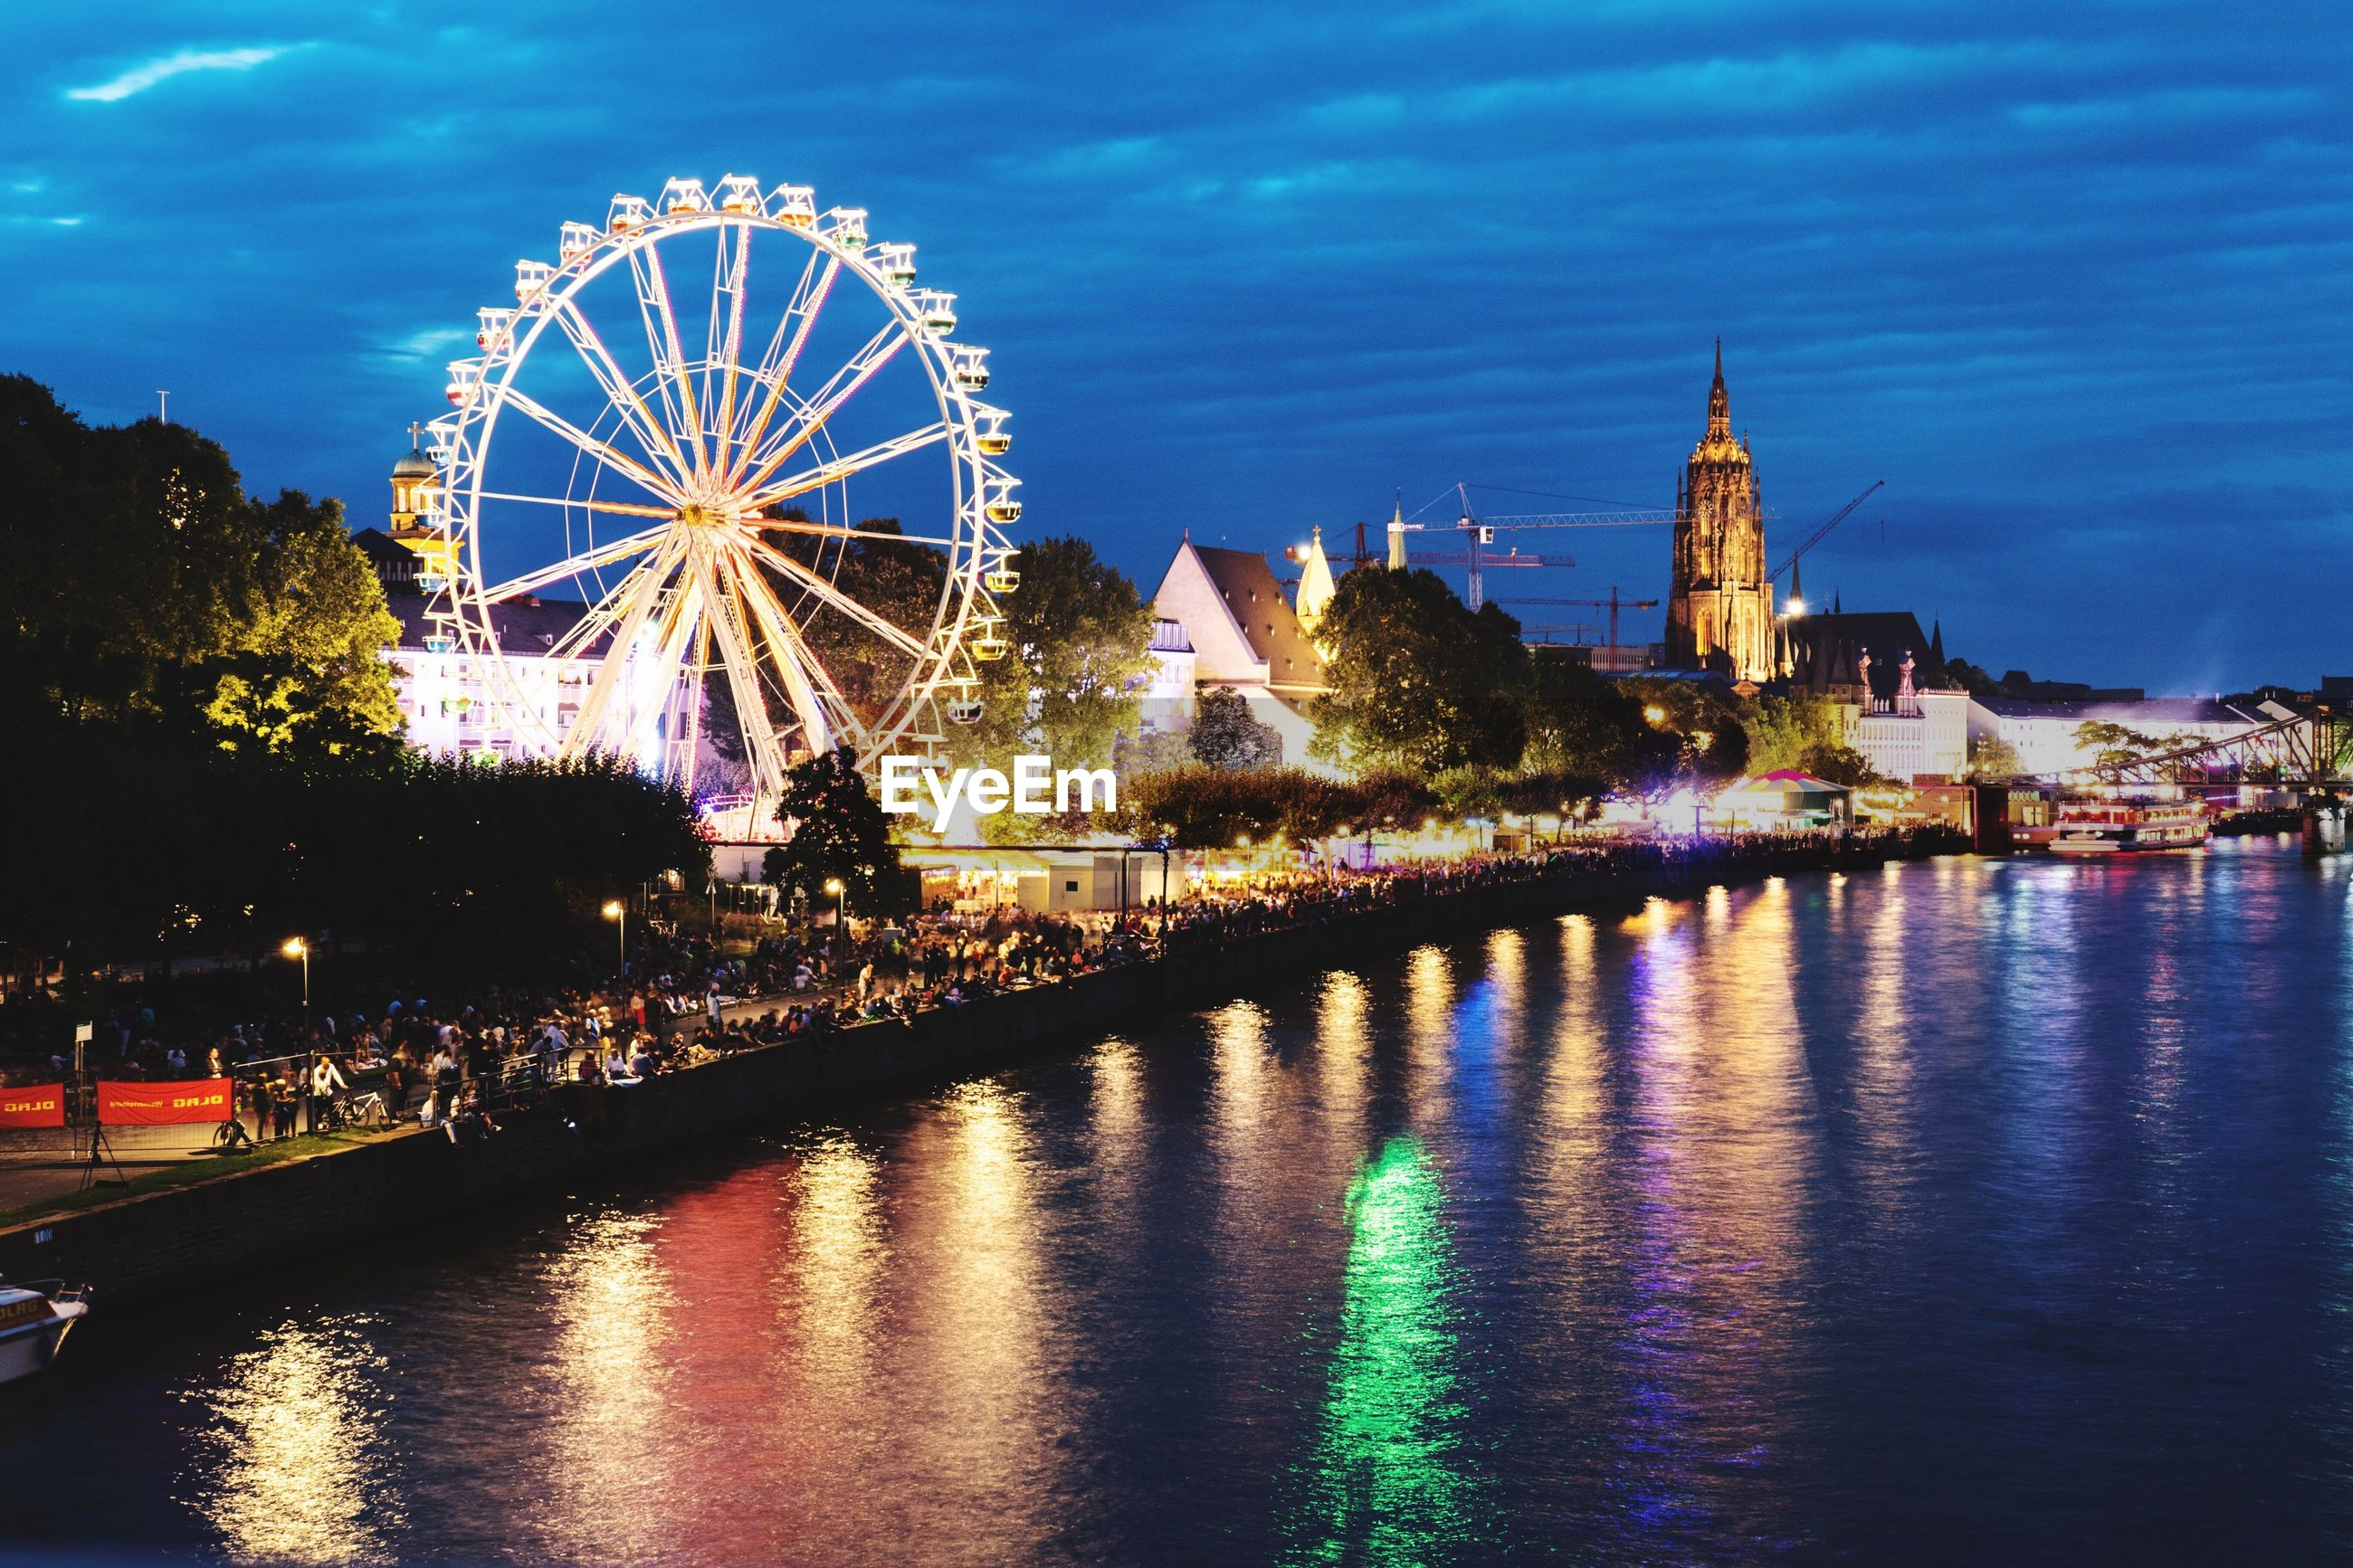 Illuminated ferris wheel by river in city at night